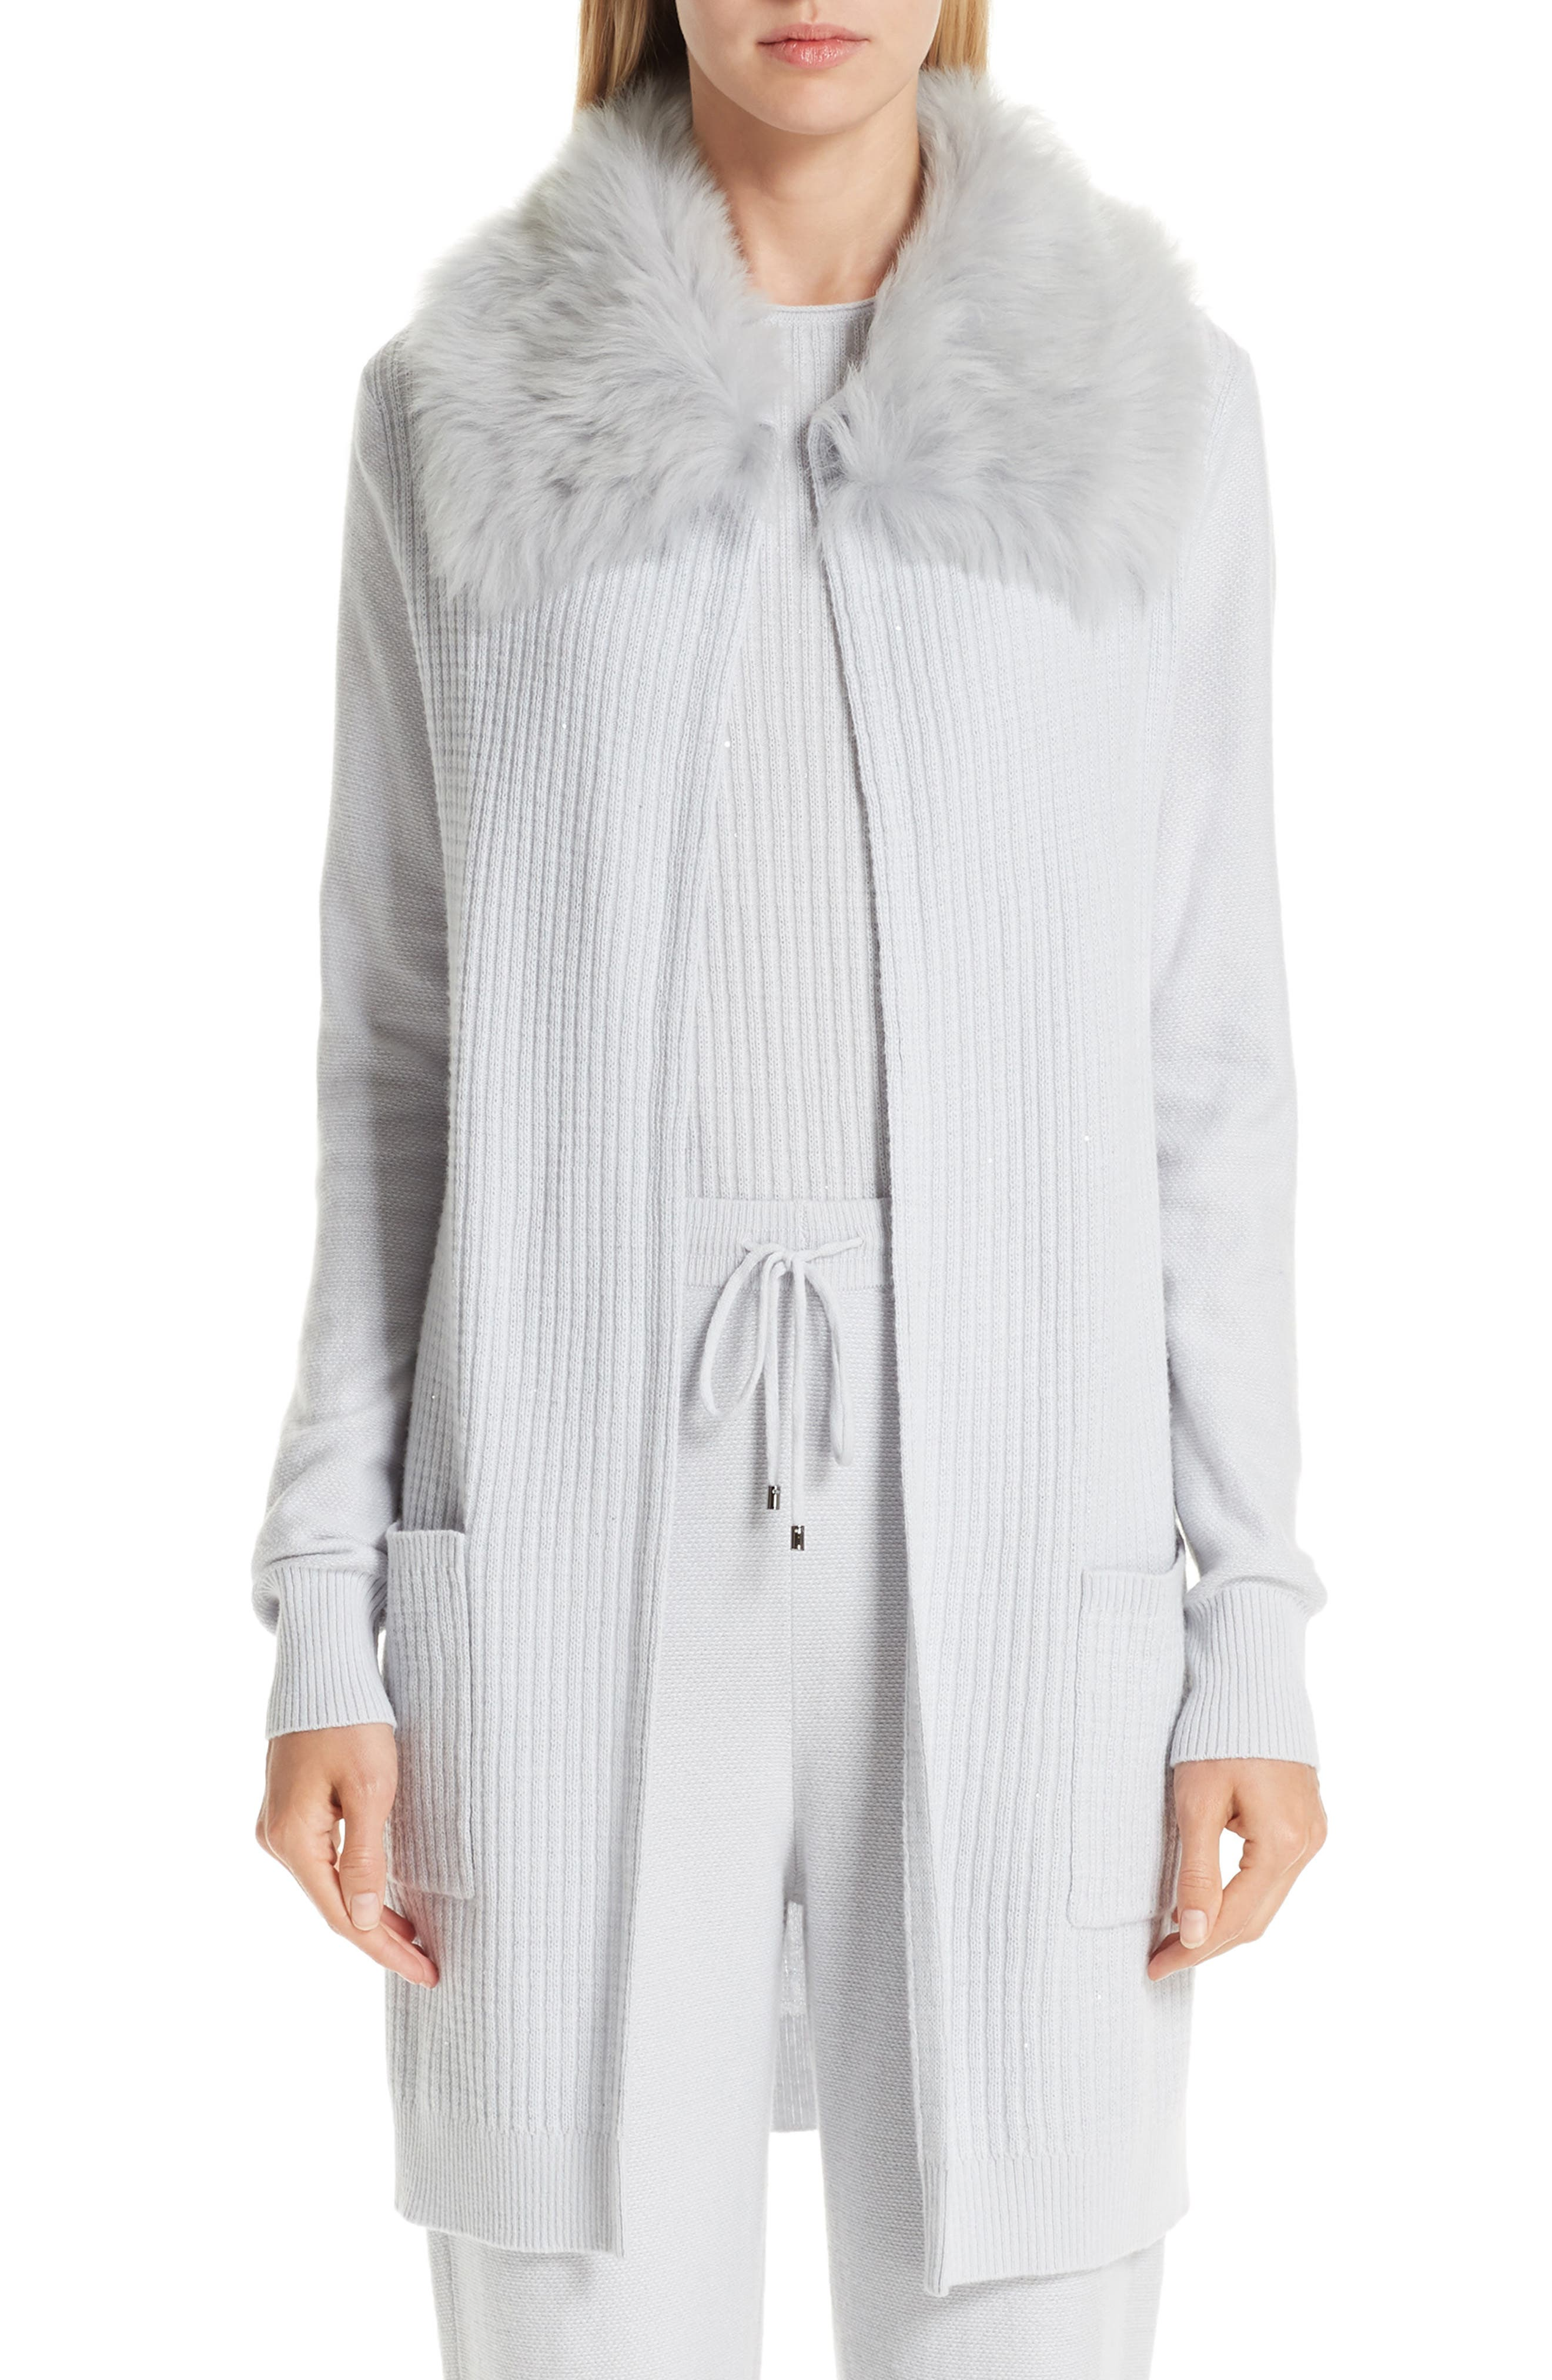 St. John Collection Rib Sequin Knit Cashmere Blend Jacket With Removable Genuine Shearling Collar, Grey